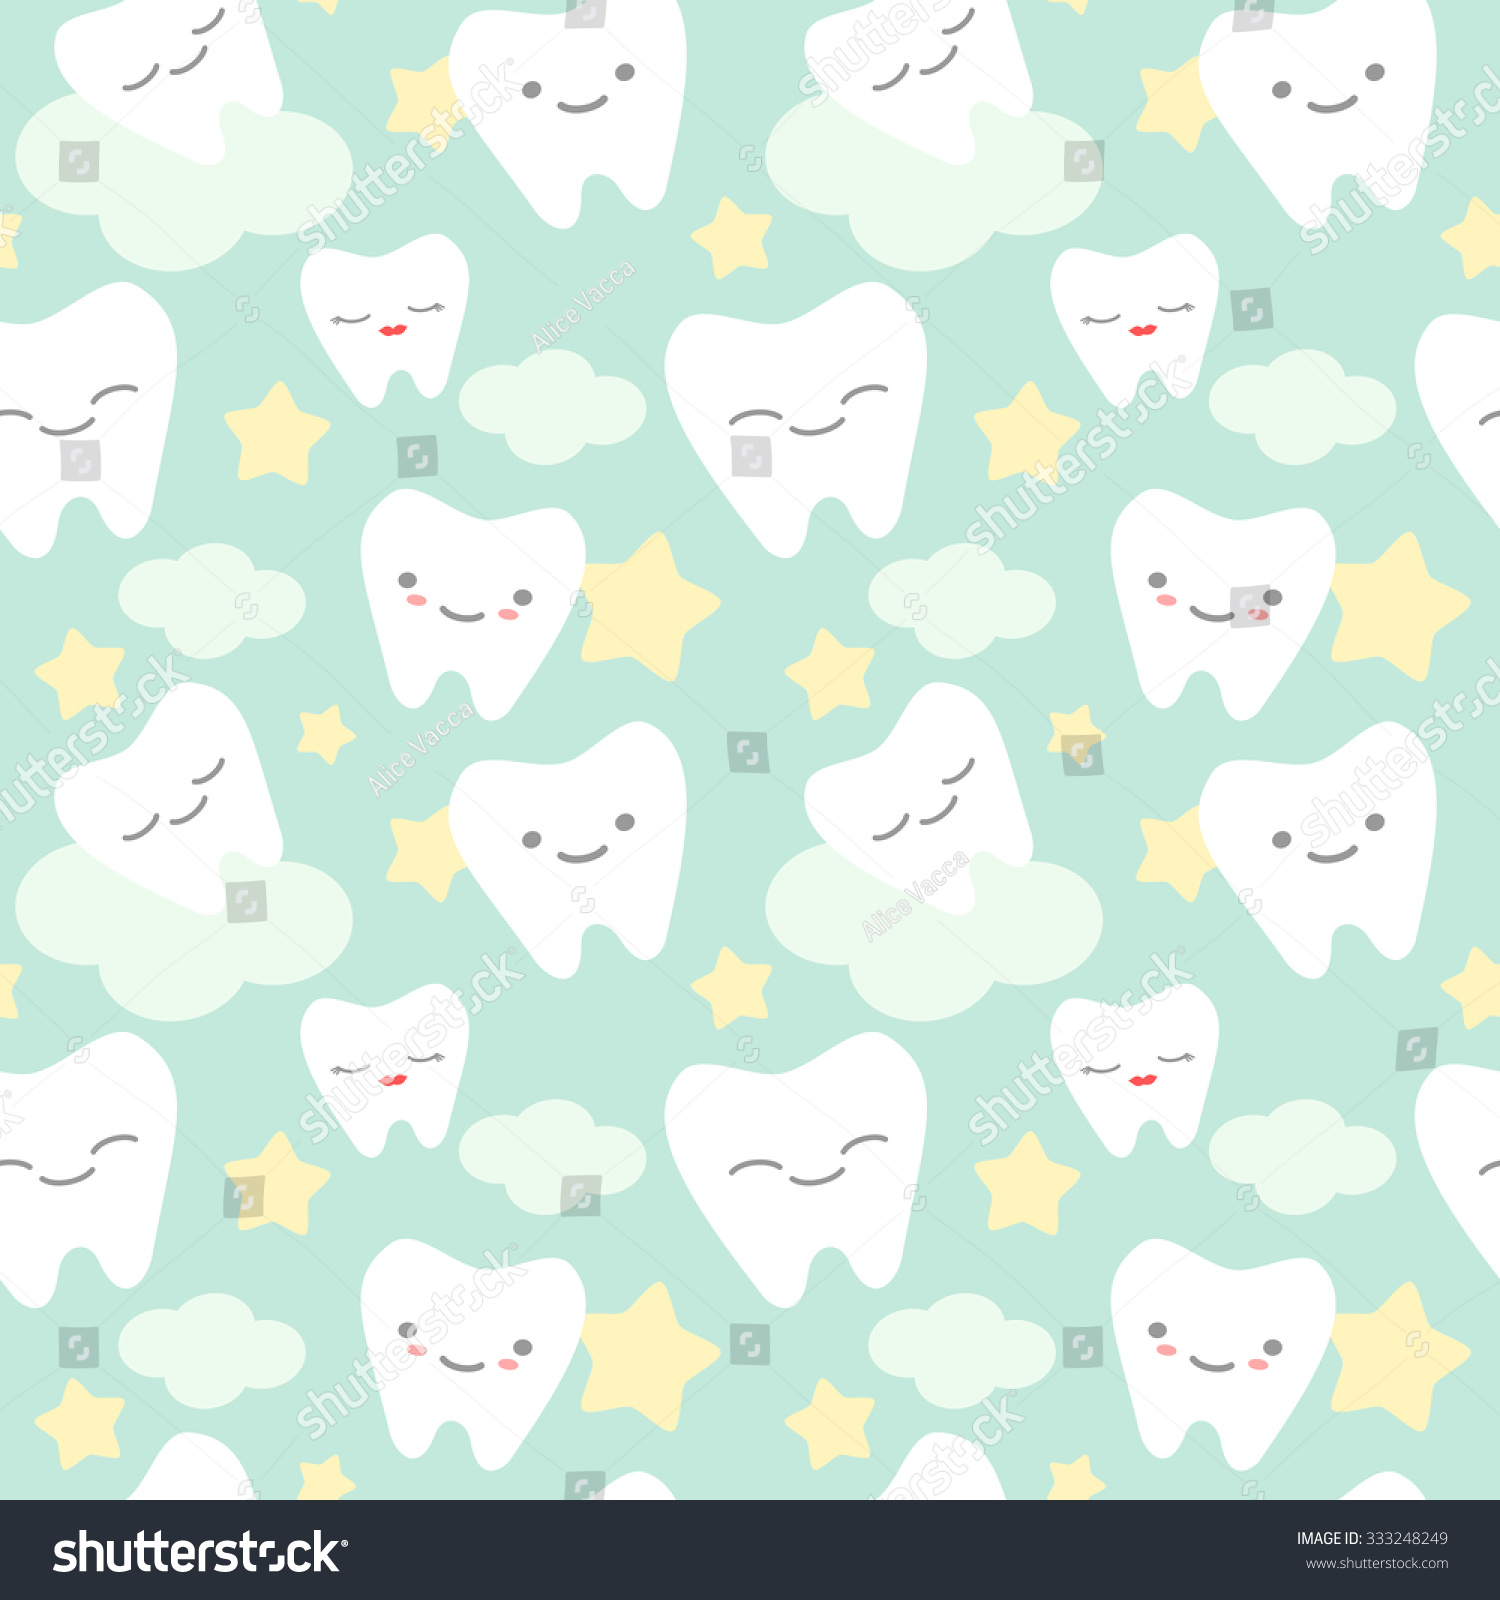 Cute Fairy Wallpaper Download Cartoon Teeth Cute Colorful Seamless Vector Stock Vector